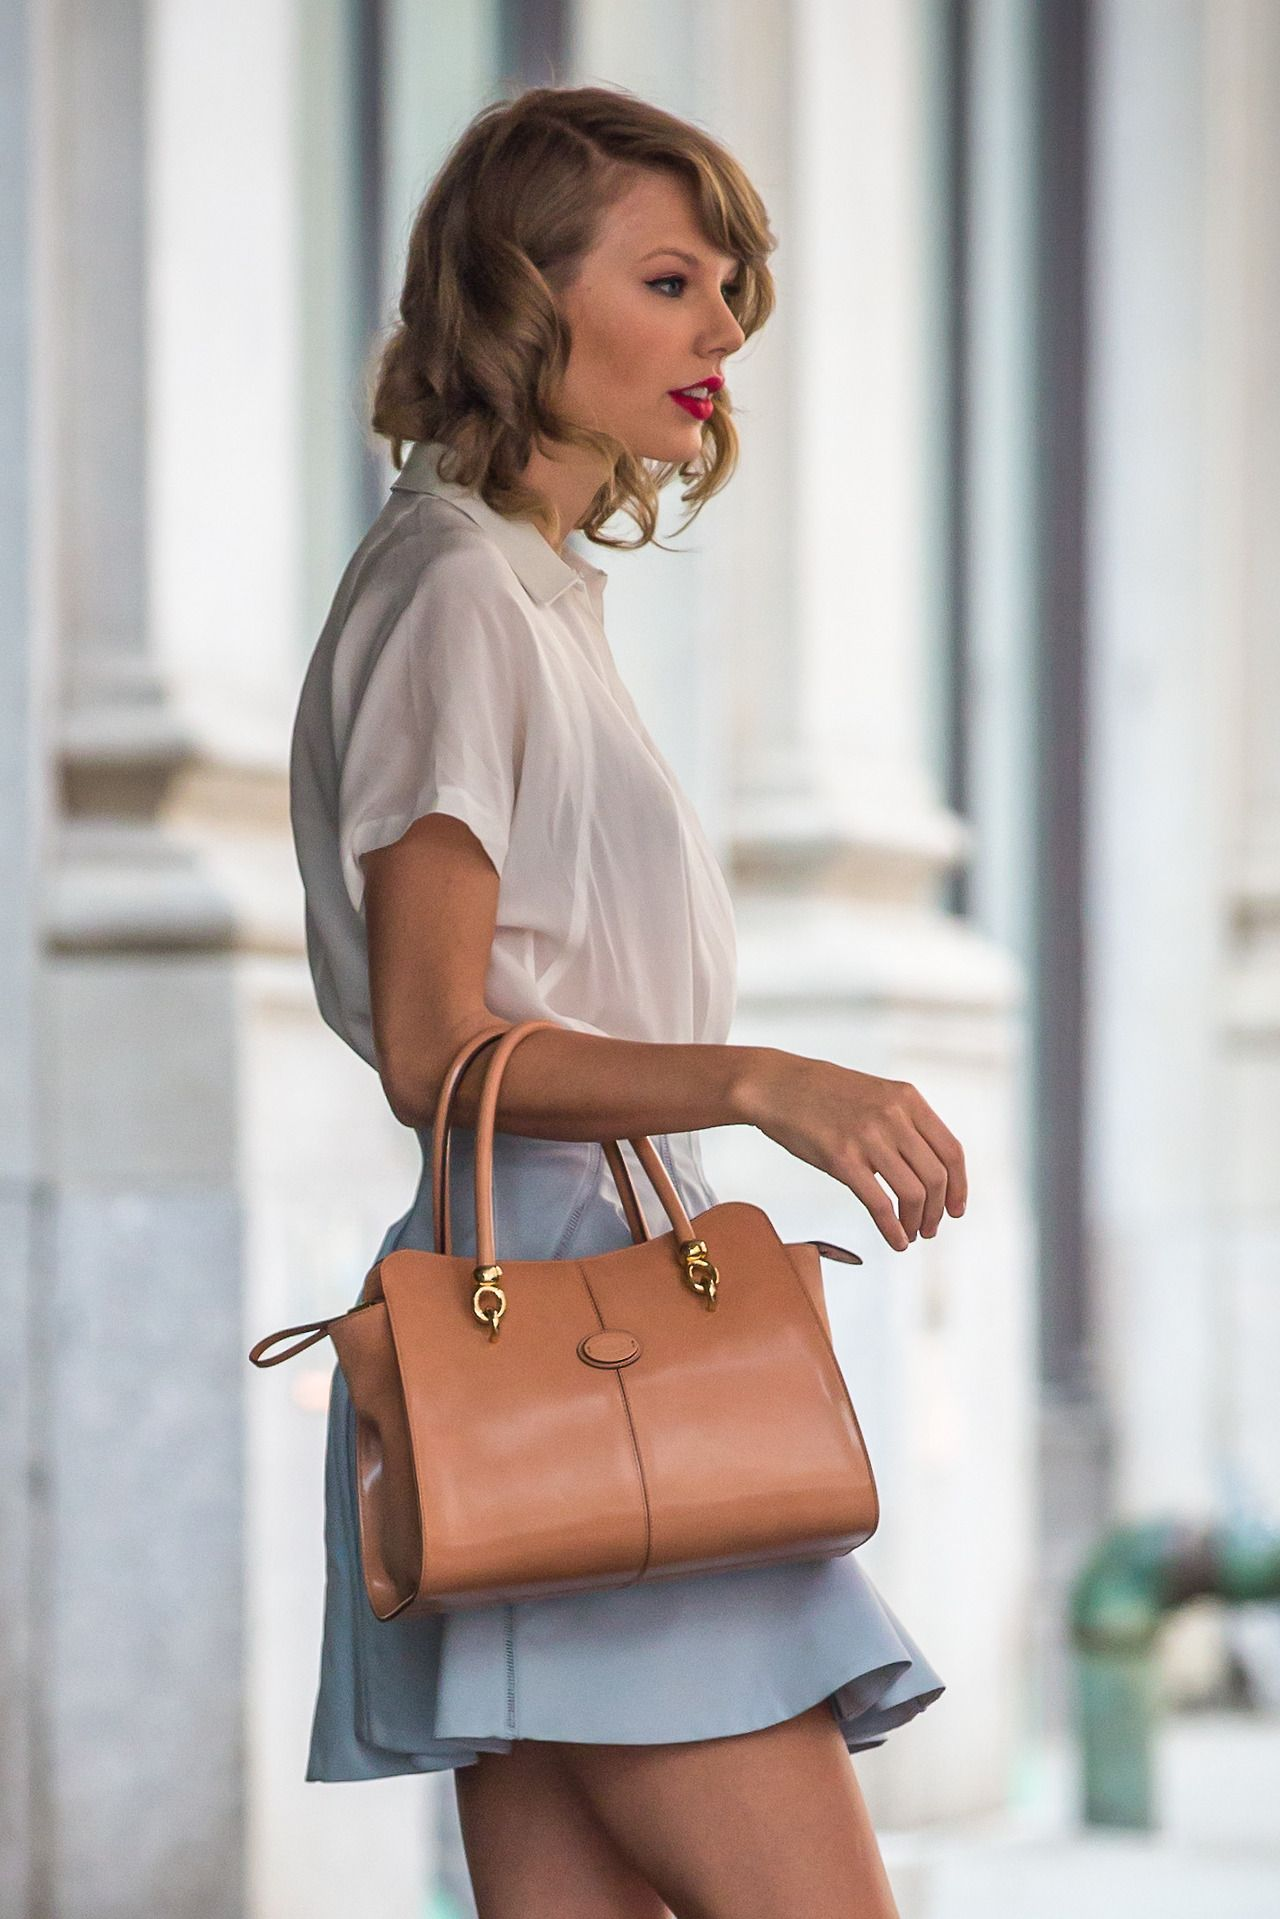 Taylor leaving her apartment on May 24, 2014 | Taylor ...